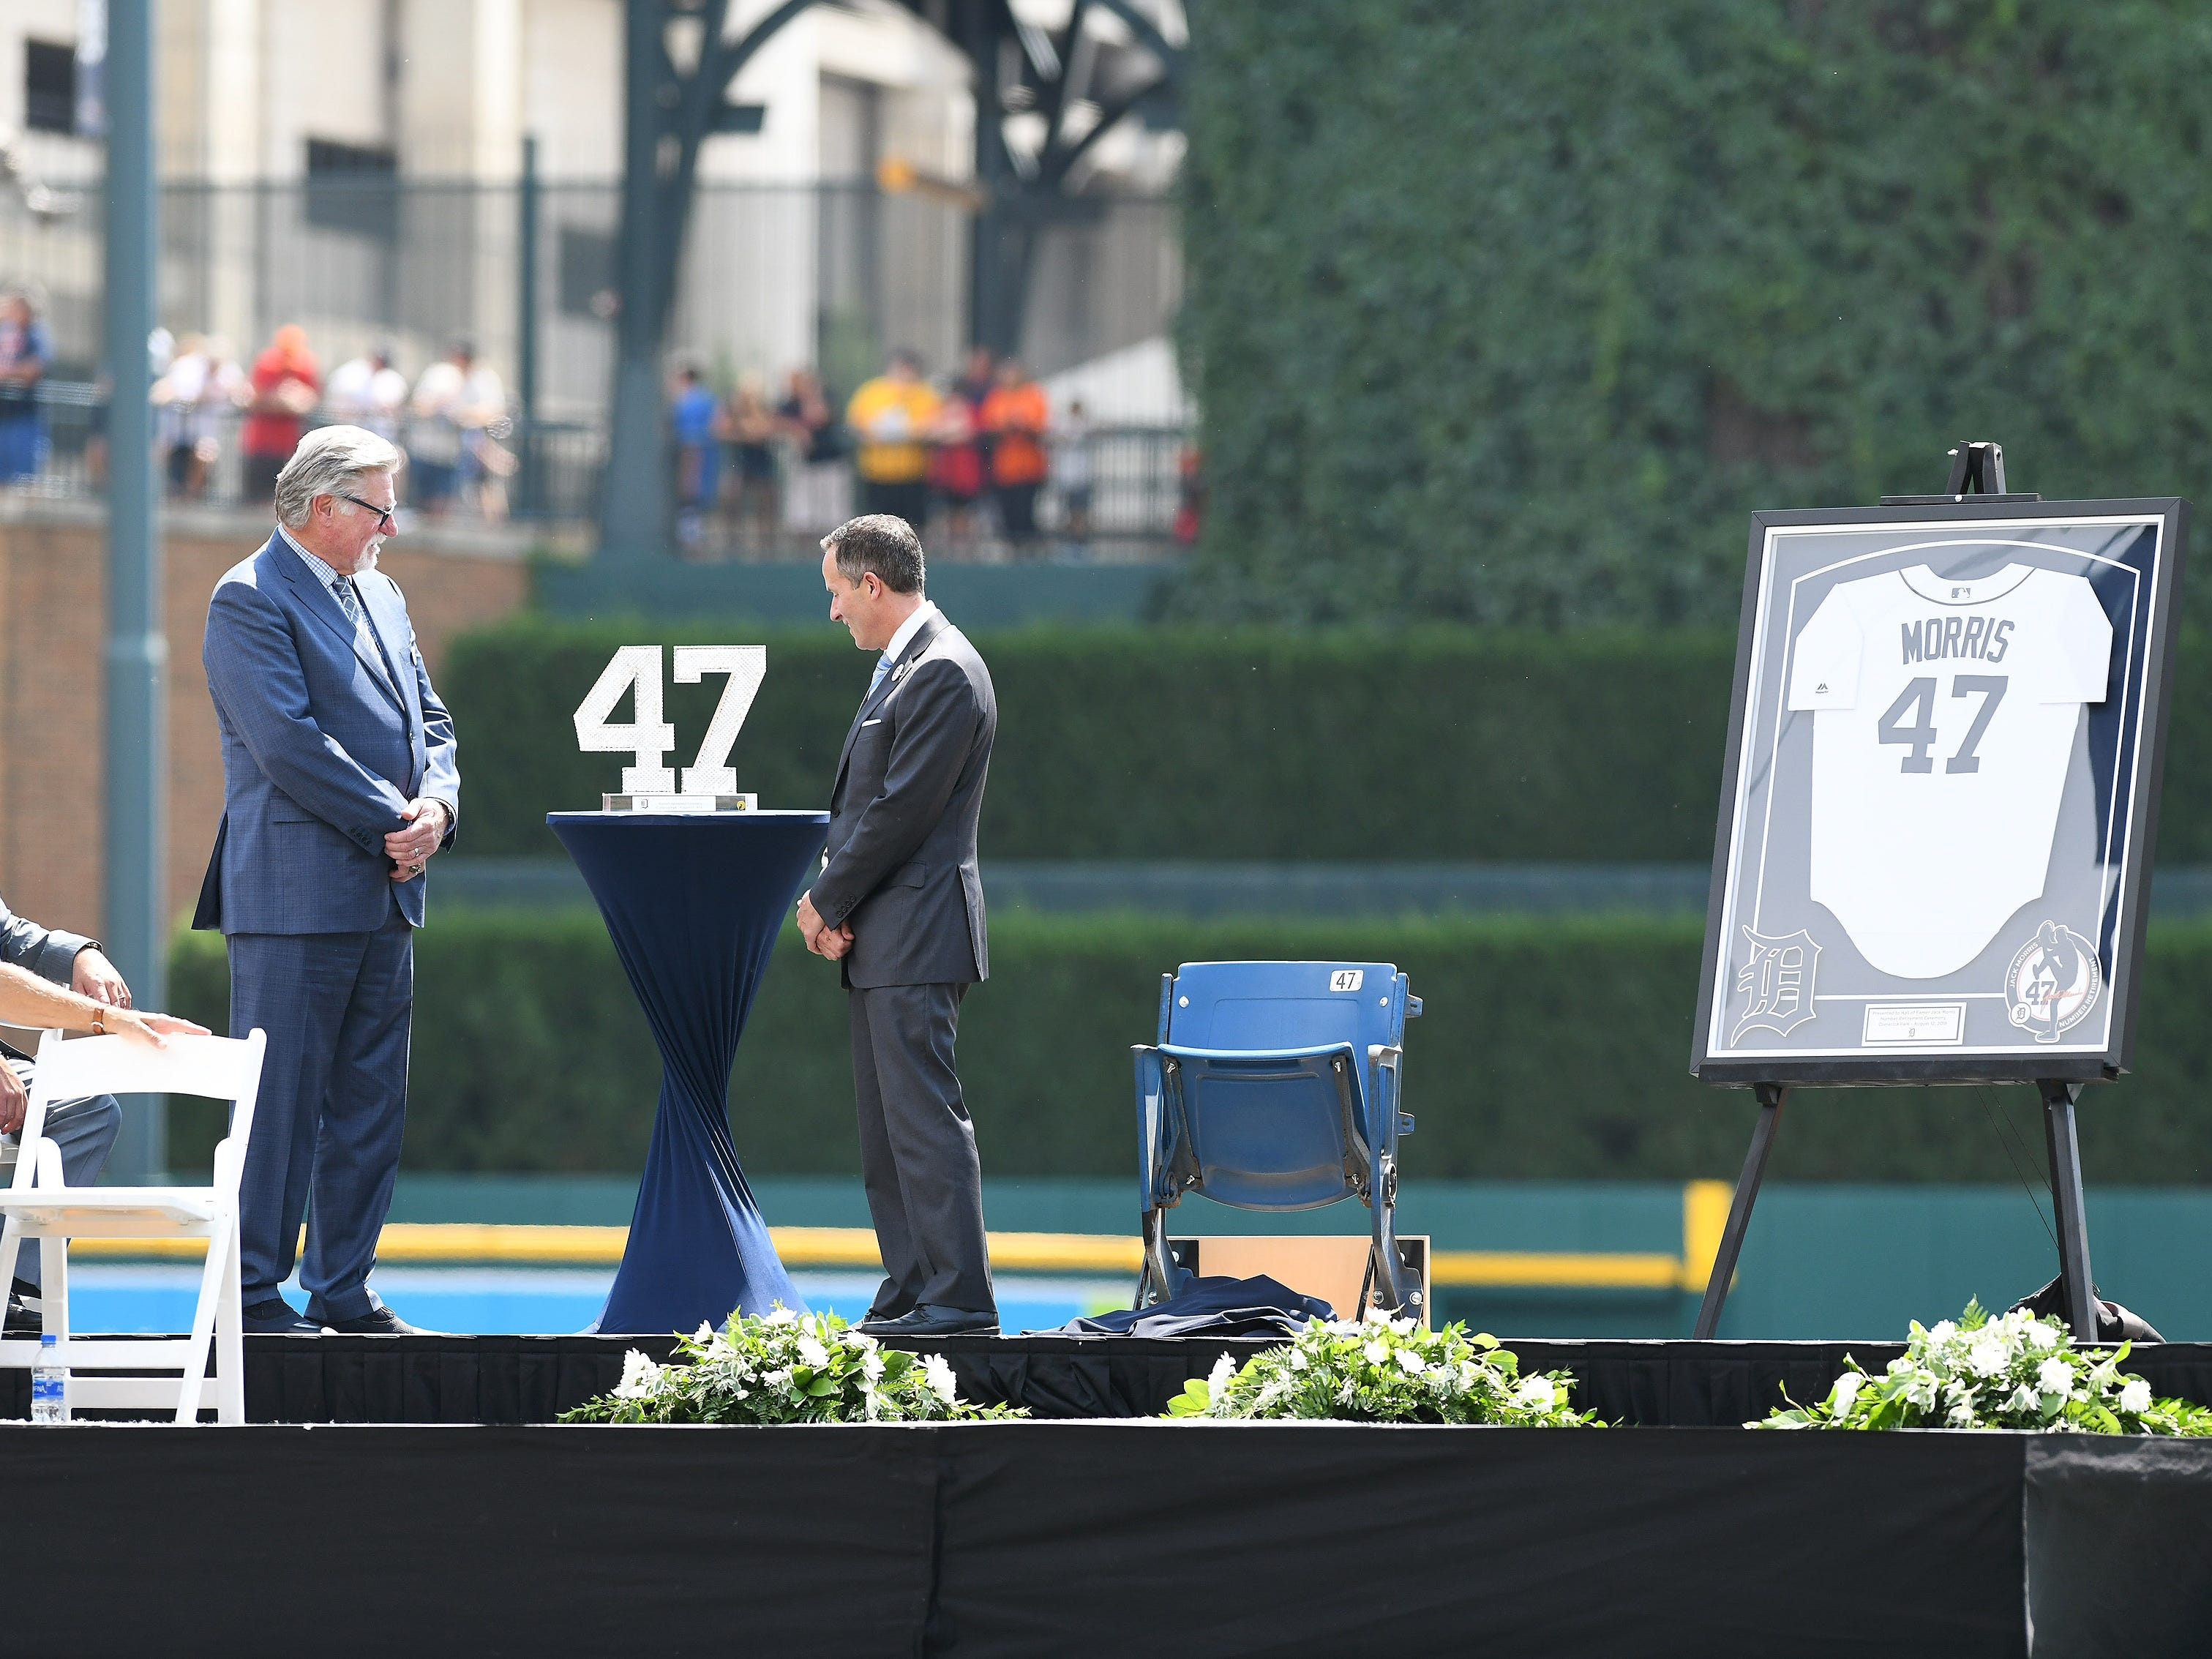 Tigers chairman and CEO Chris Ilitch, center, unveils a Waterford crystal #47 for Jack Morris, left, during the special pregame ceremony.